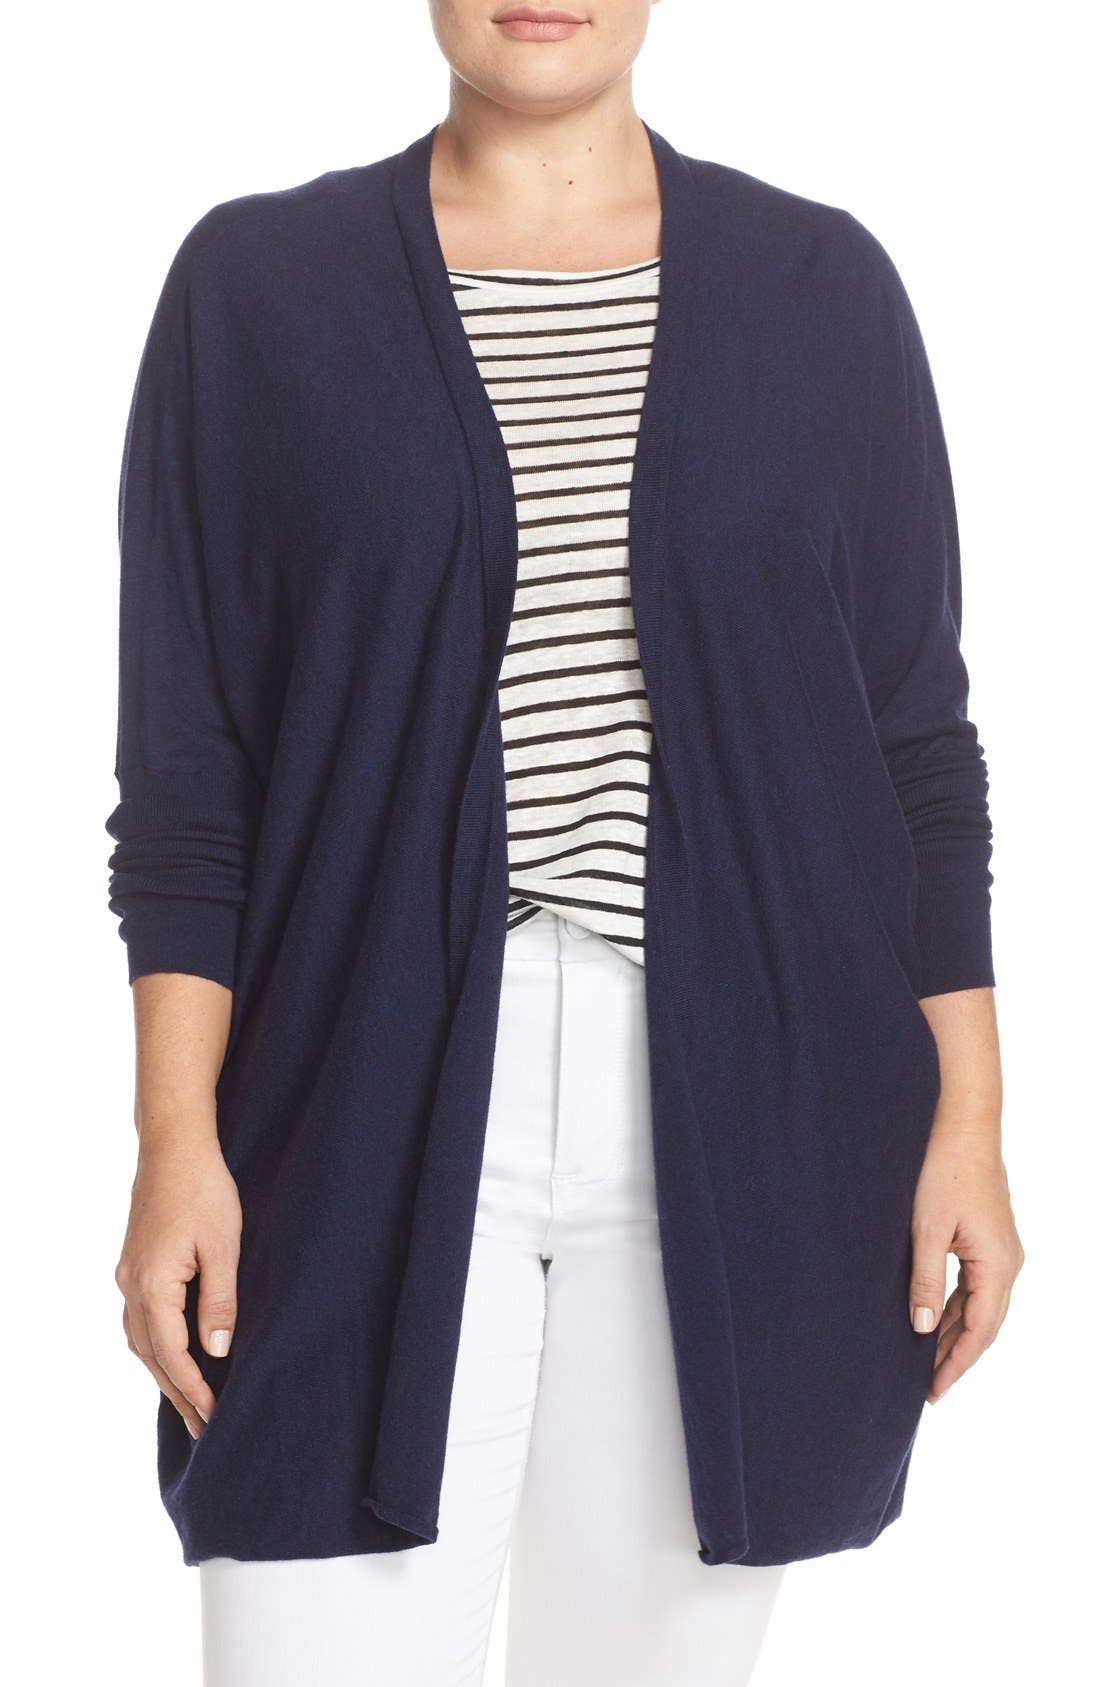 'Darma' Cotton & Cashmere Knit Cardigan,                         Main,                         color, Melange Navy